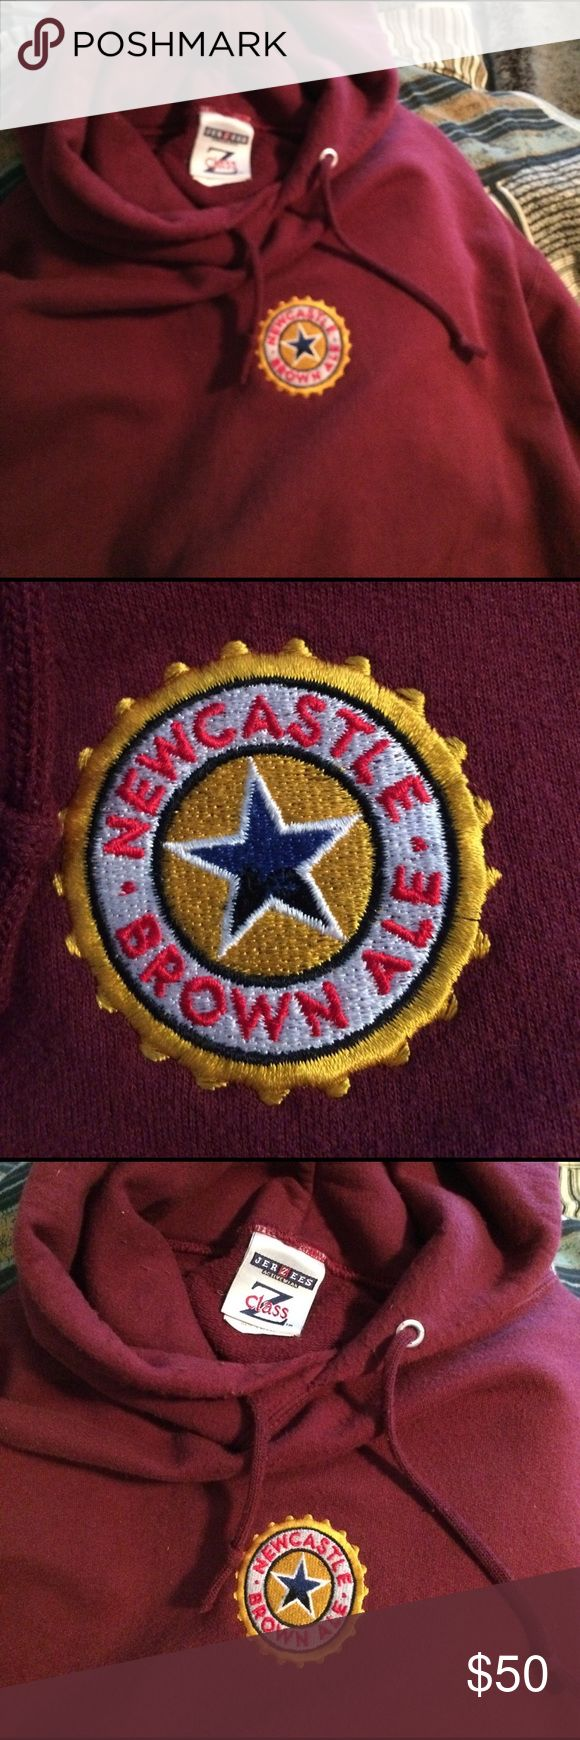 Newcastle Brown Ale Jerzees Hoodie w/ etched logo Malty Maroon Newcastle Brown Ale Jerzees Z Class Hoodie with etched NBA star logo center chest. Gently enjoyed in excellent condition. Size L. Jerzees Jackets & Coats Lightweight & Shirt Jackets